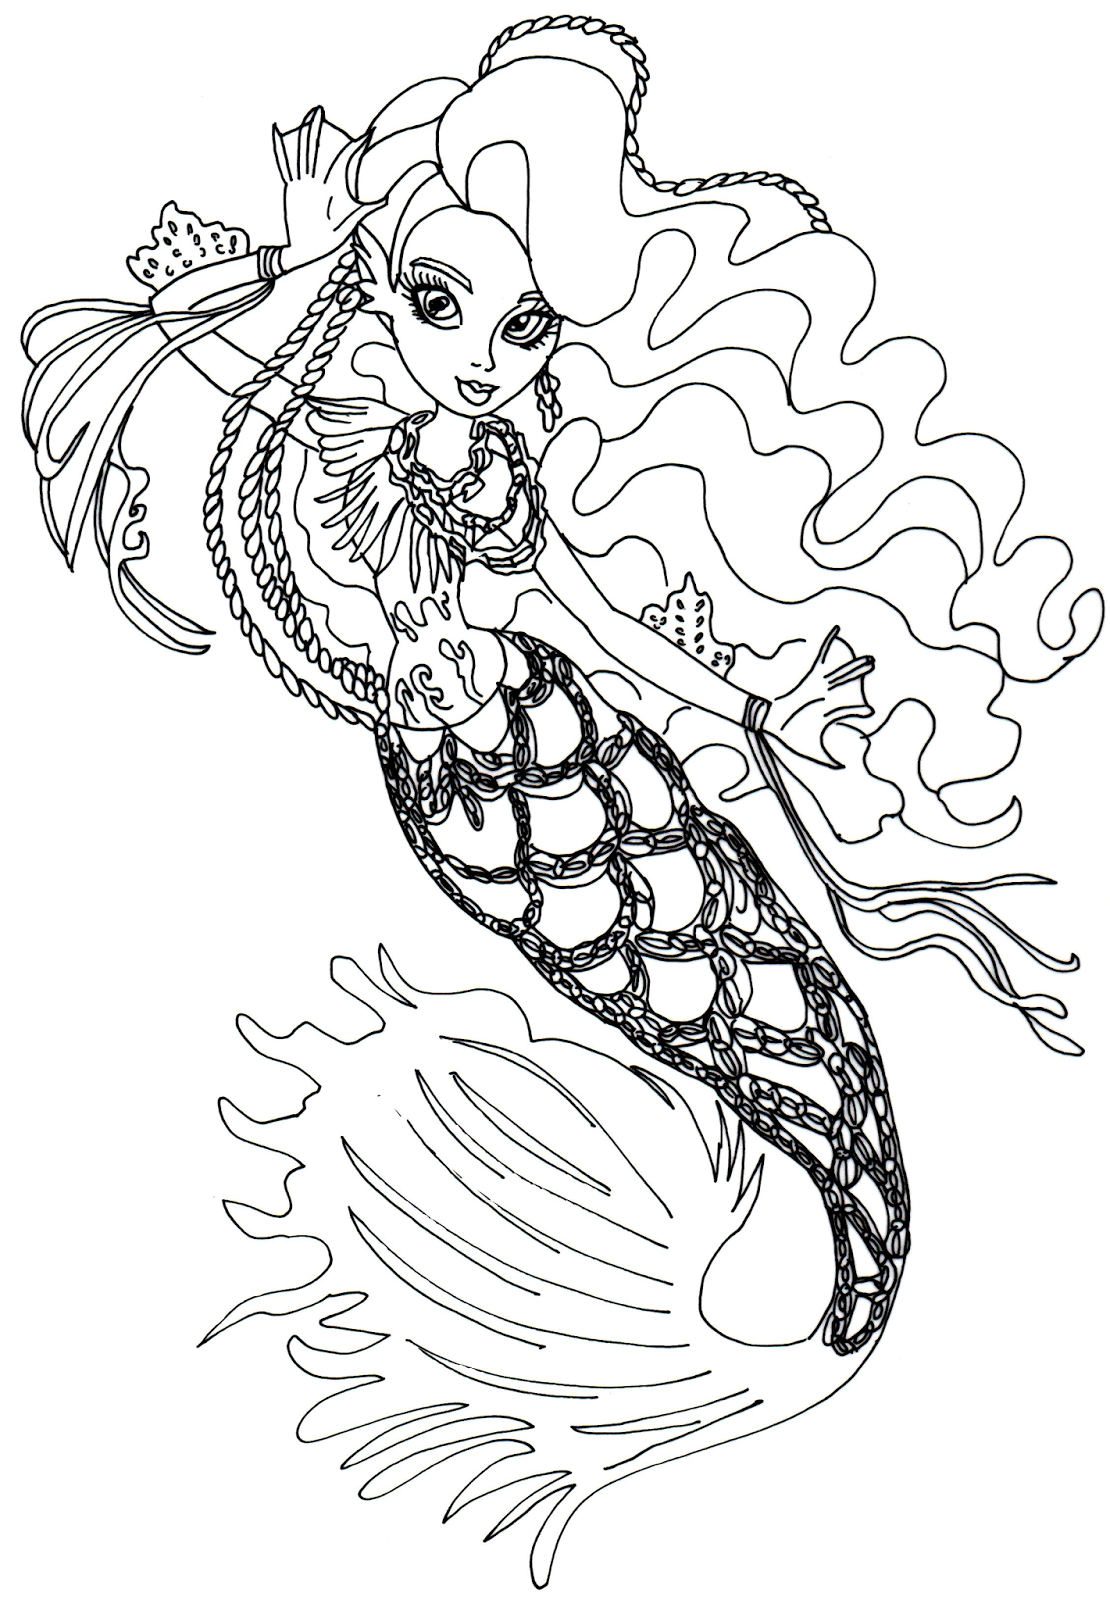 Free Printable Monster High Coloring Pages Sirena Von Boo High Coloring Pages Printables